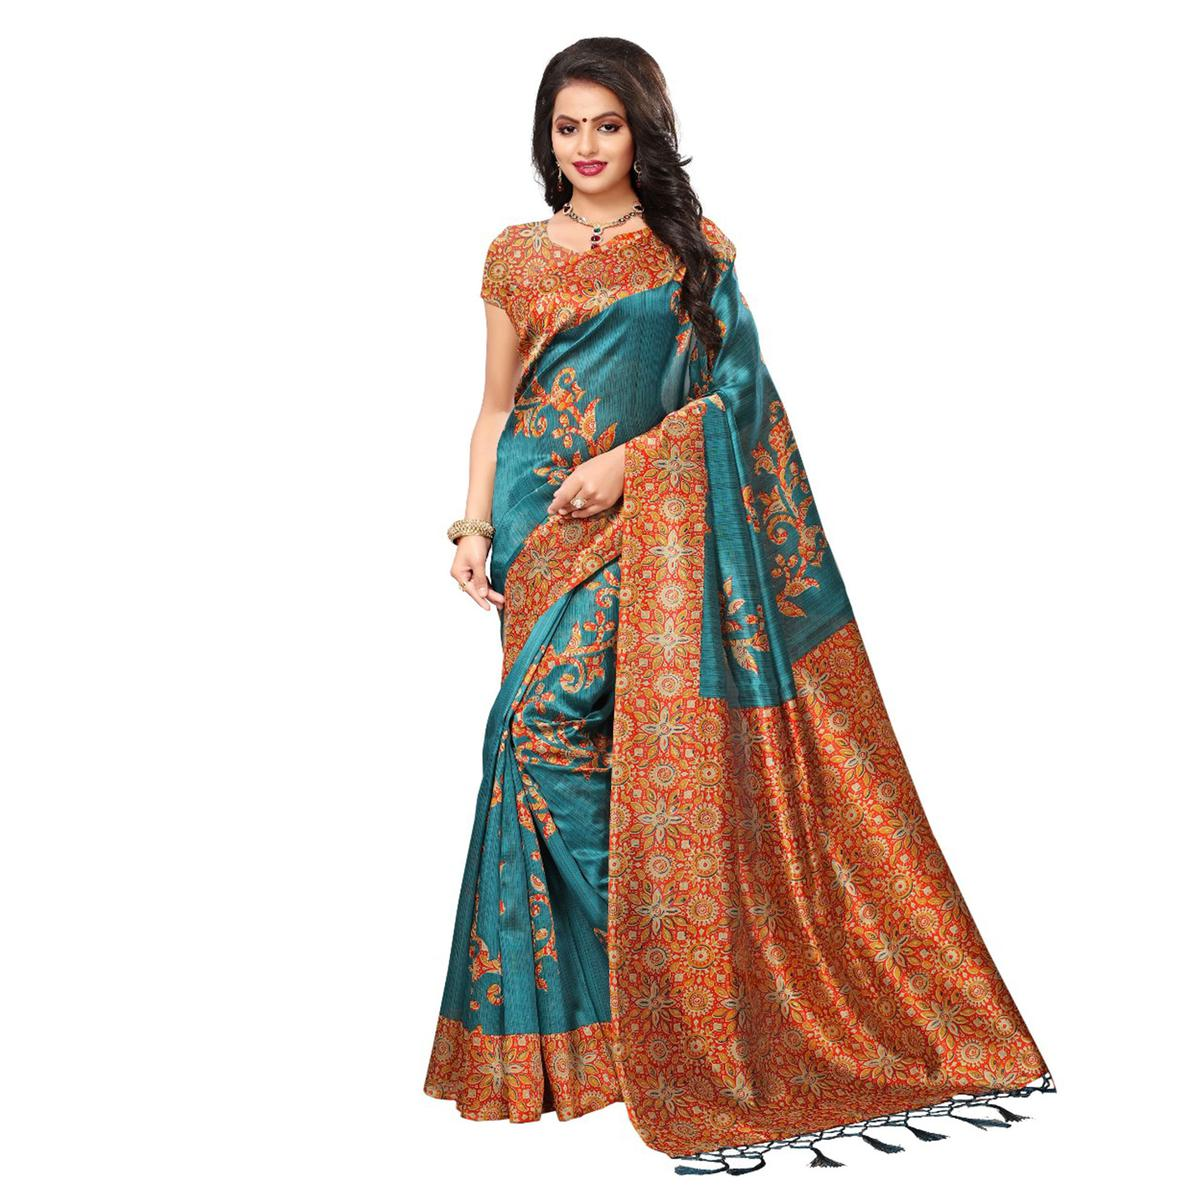 Turquoise Blue-Orange Festive Wear Kalamkari Printed Art Silk Saree With Tassels